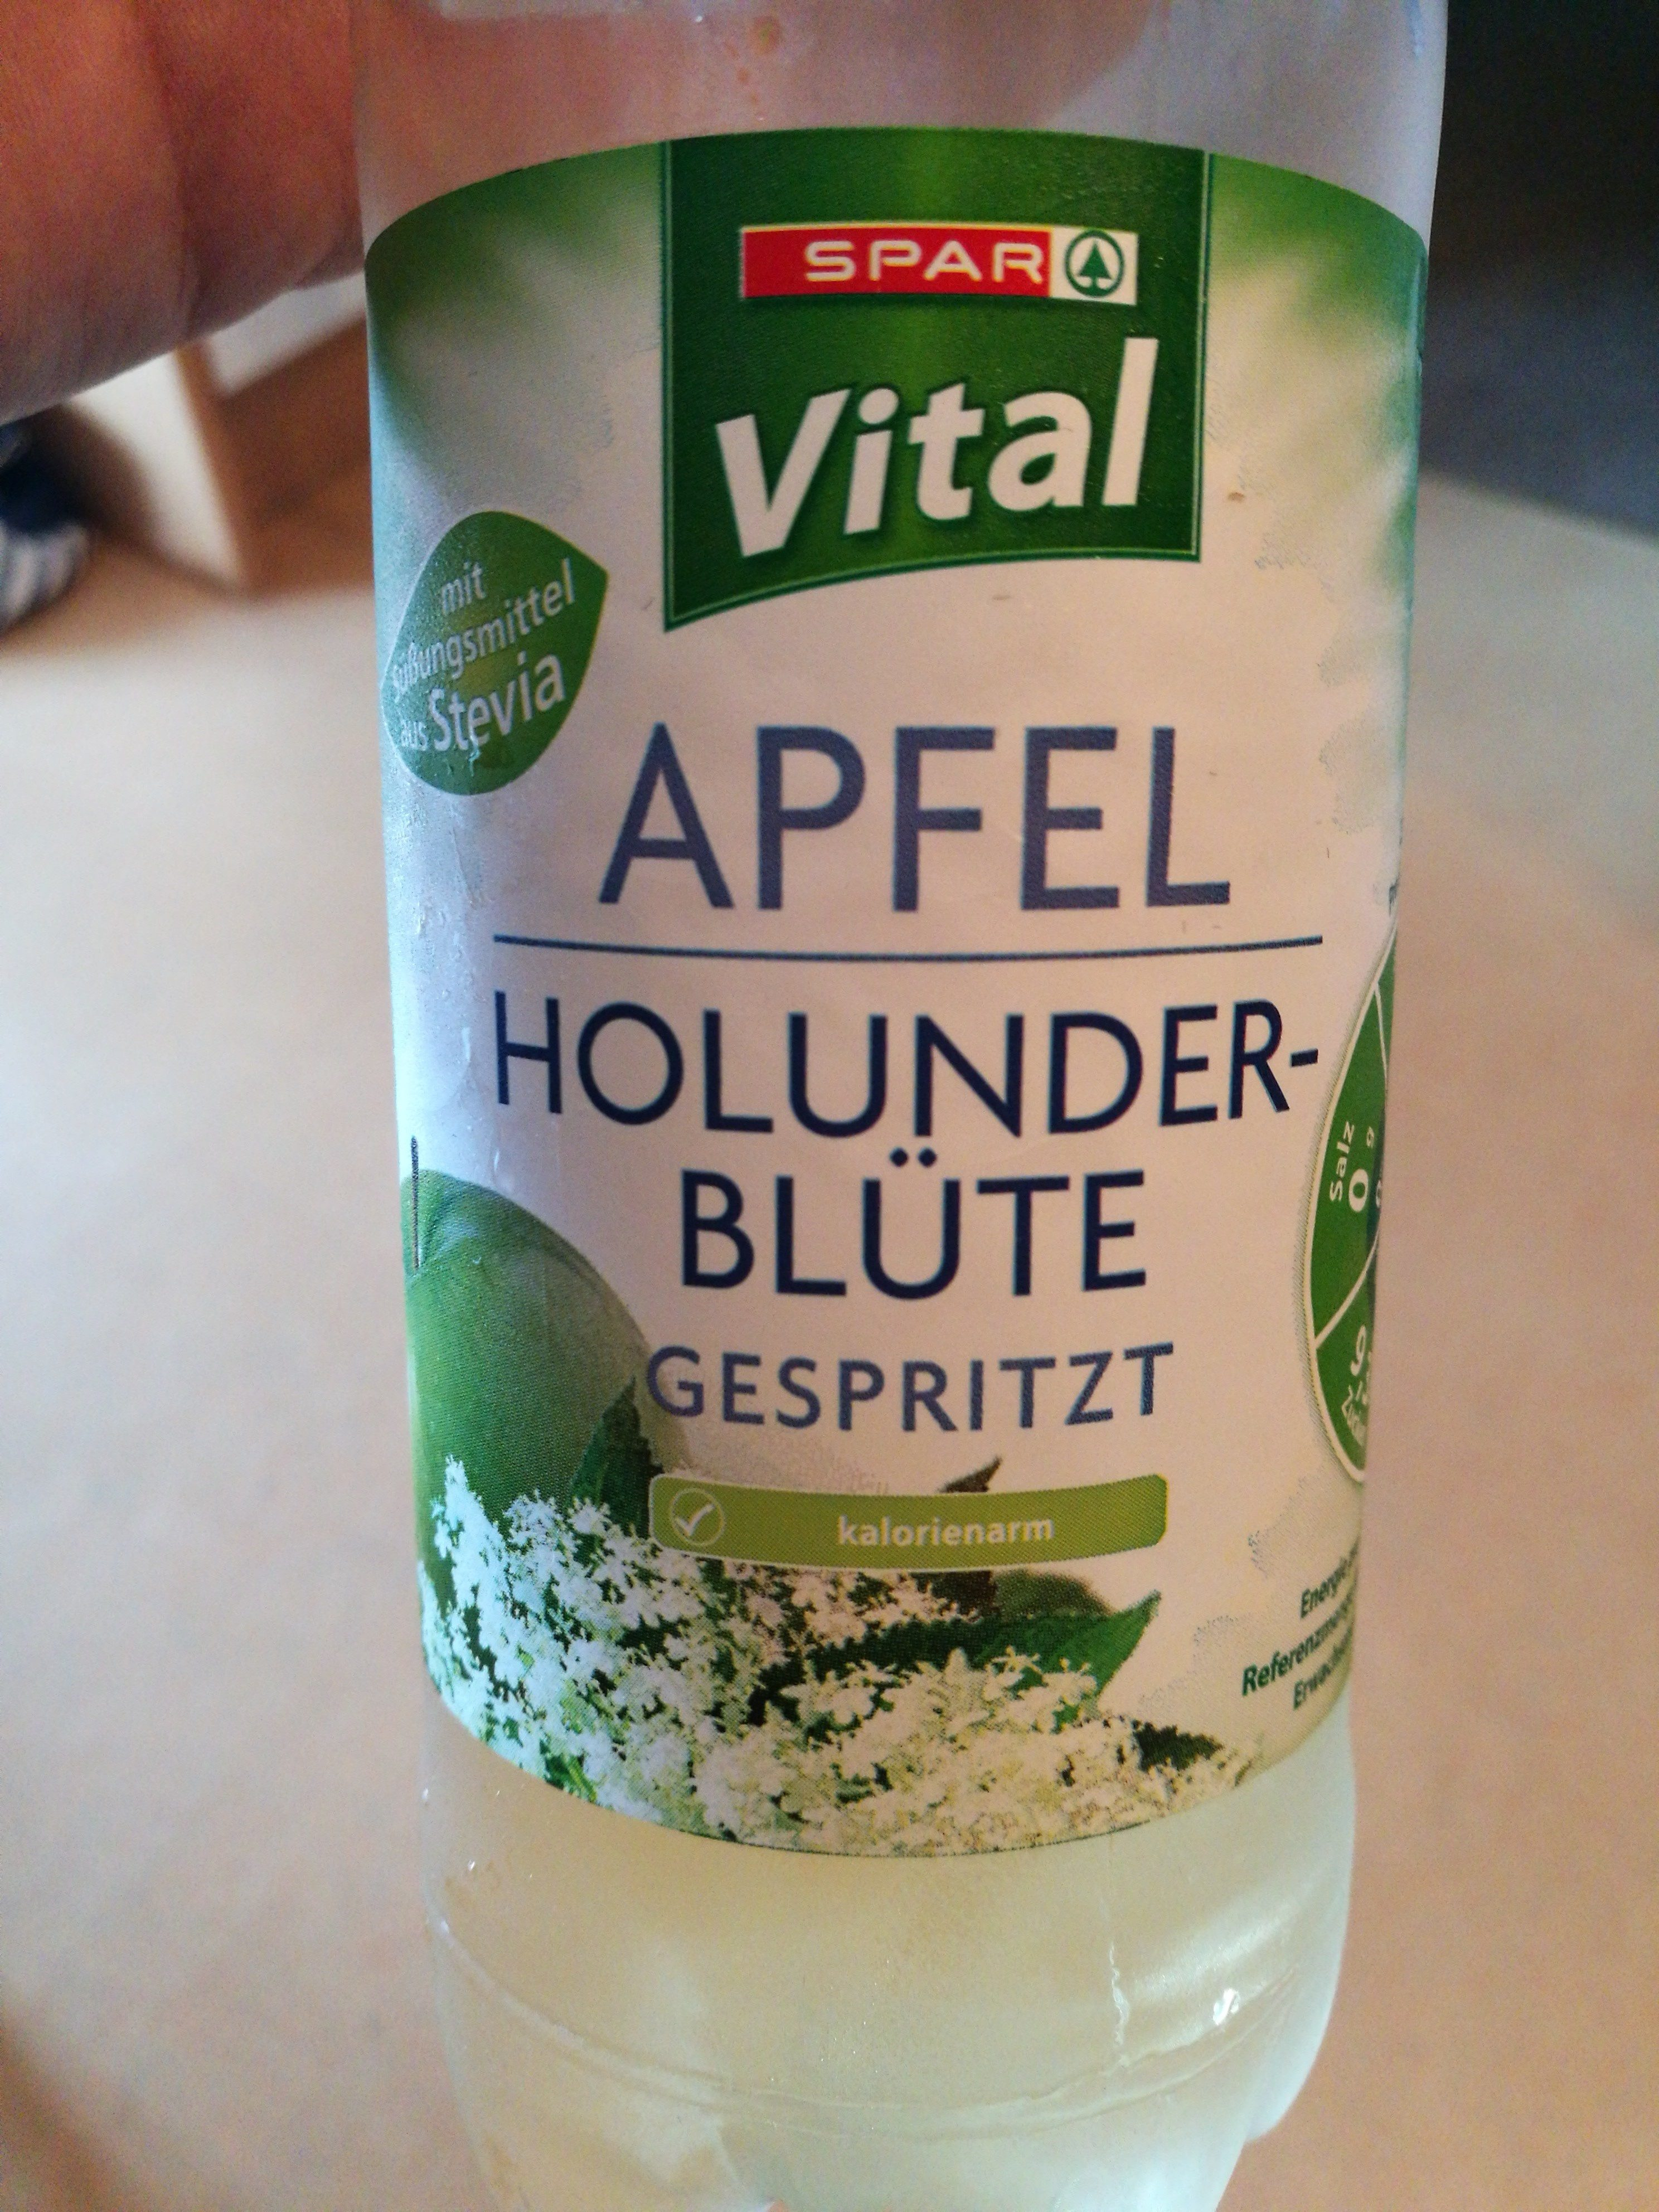 Apfel Holunder-Blüte - Product